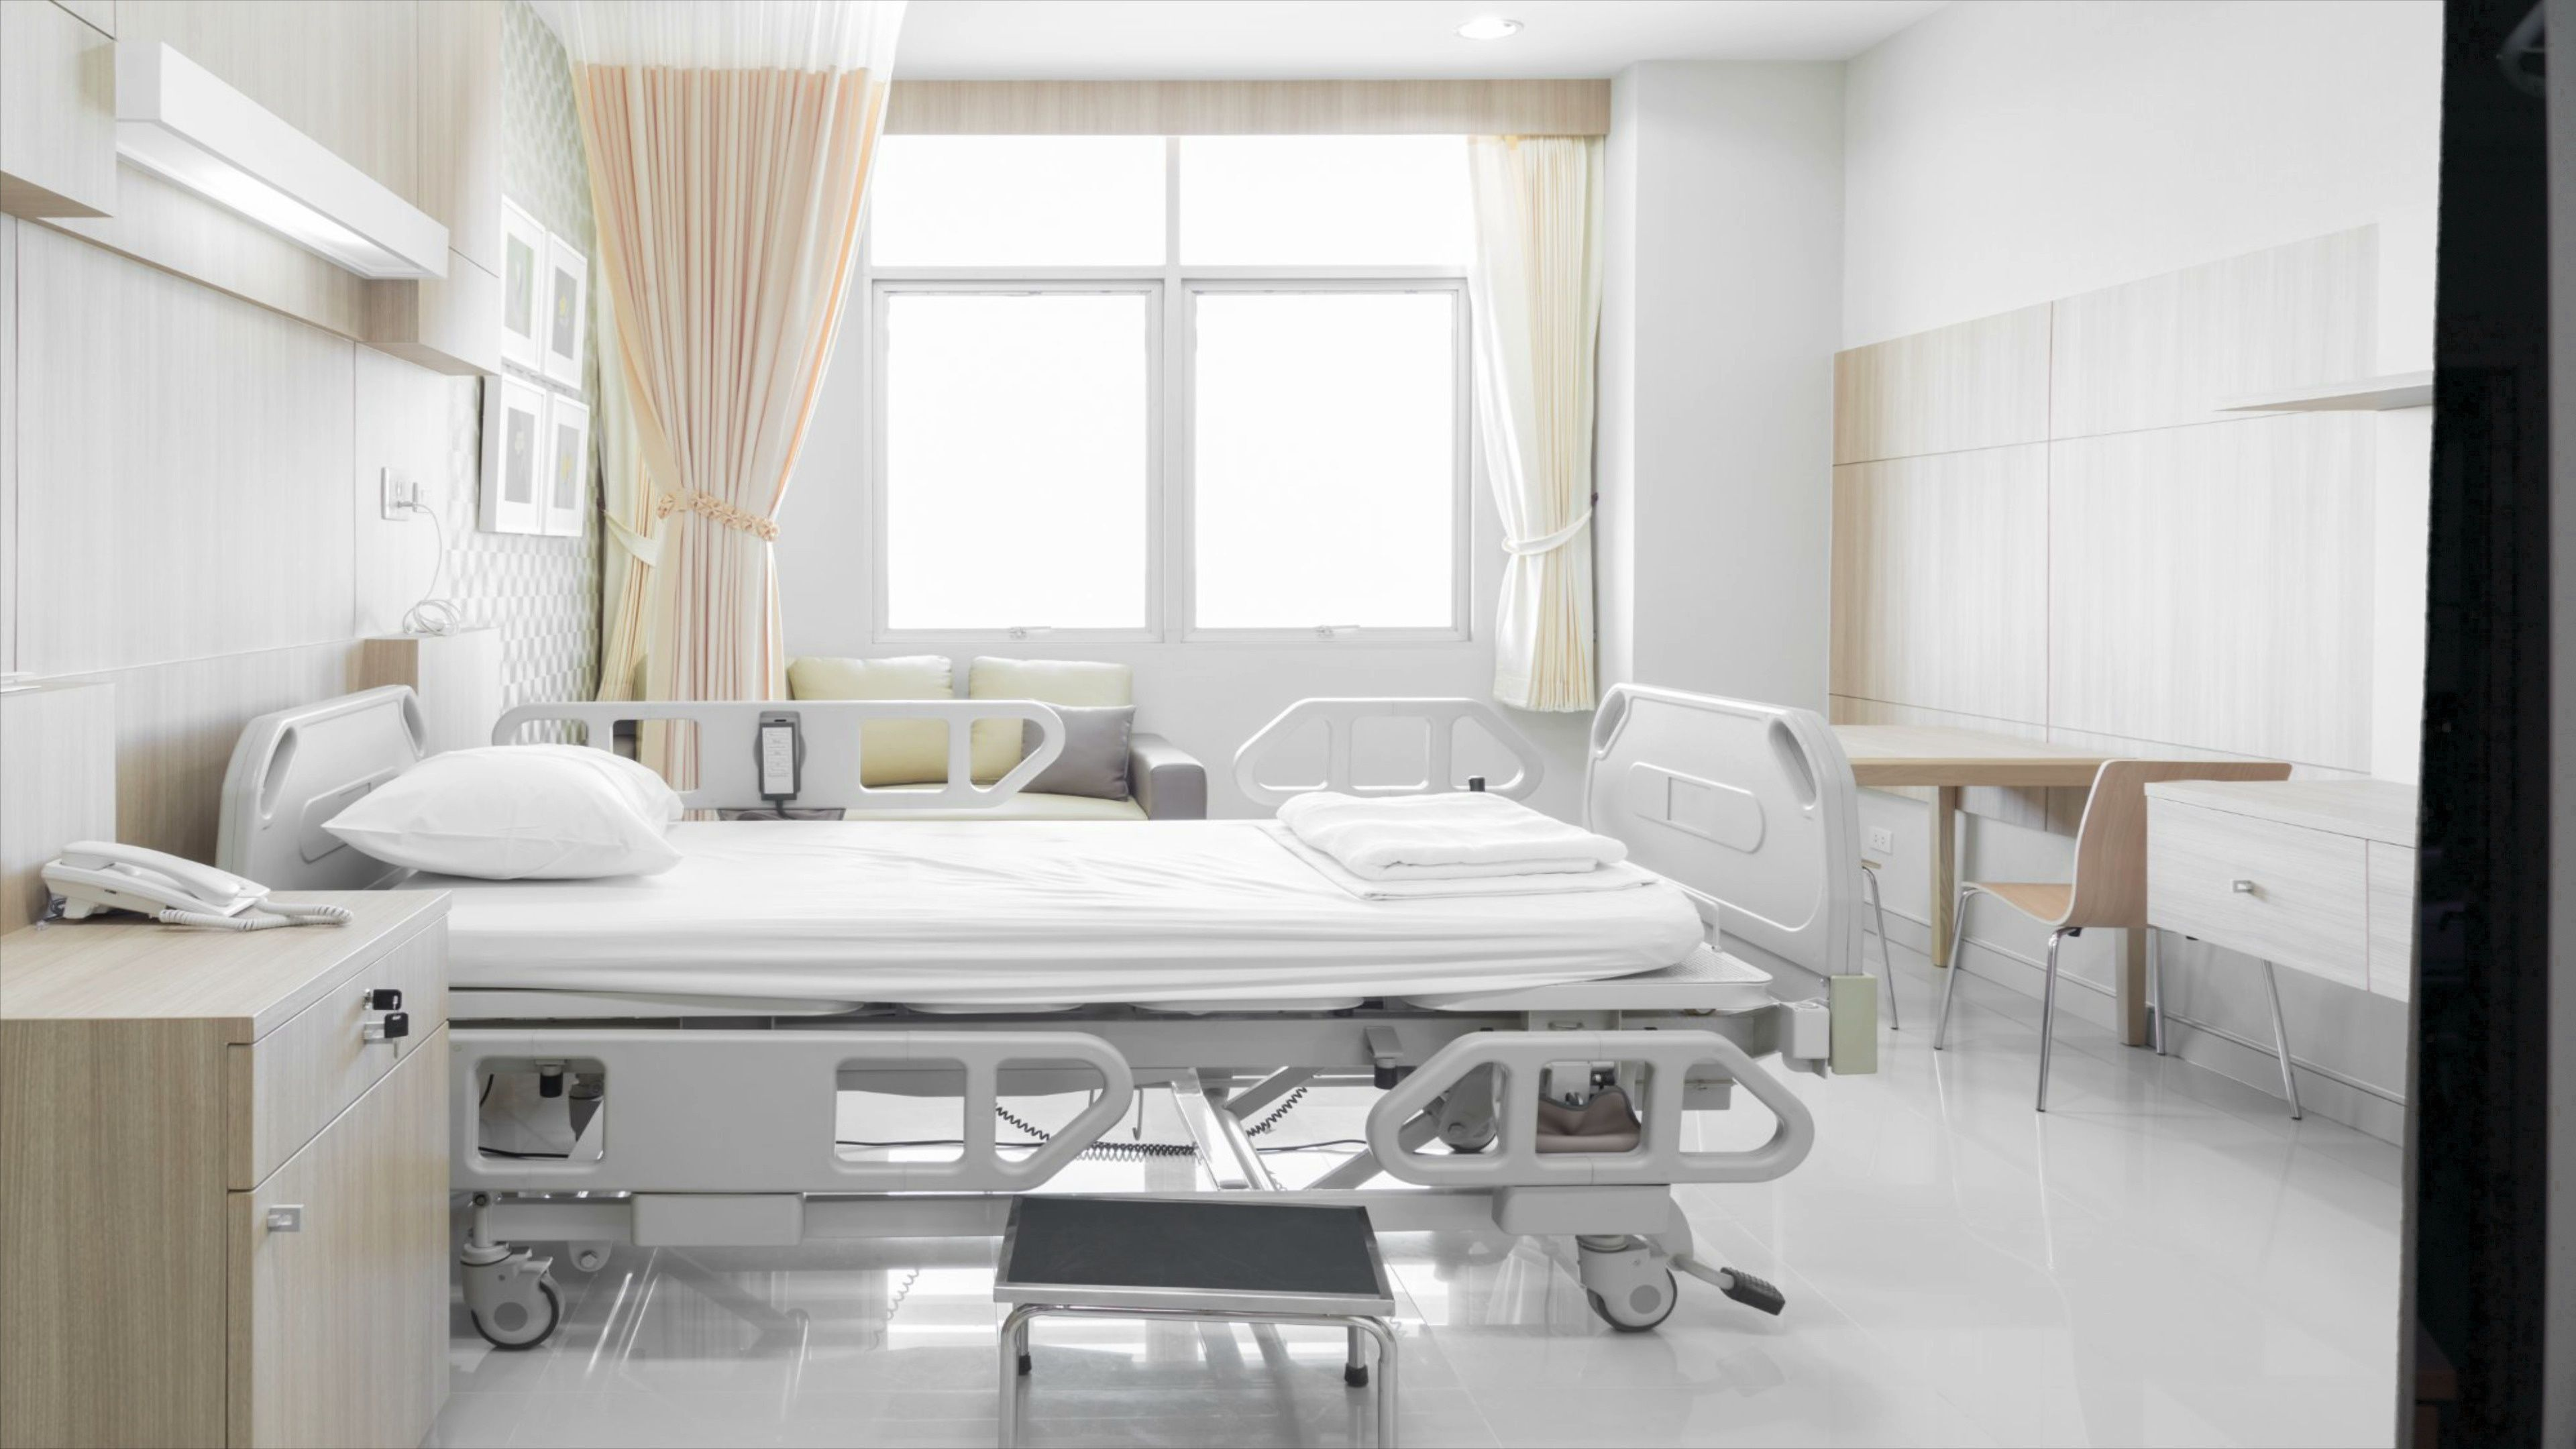 Private hospital rooms hd backgrounds photos #2124